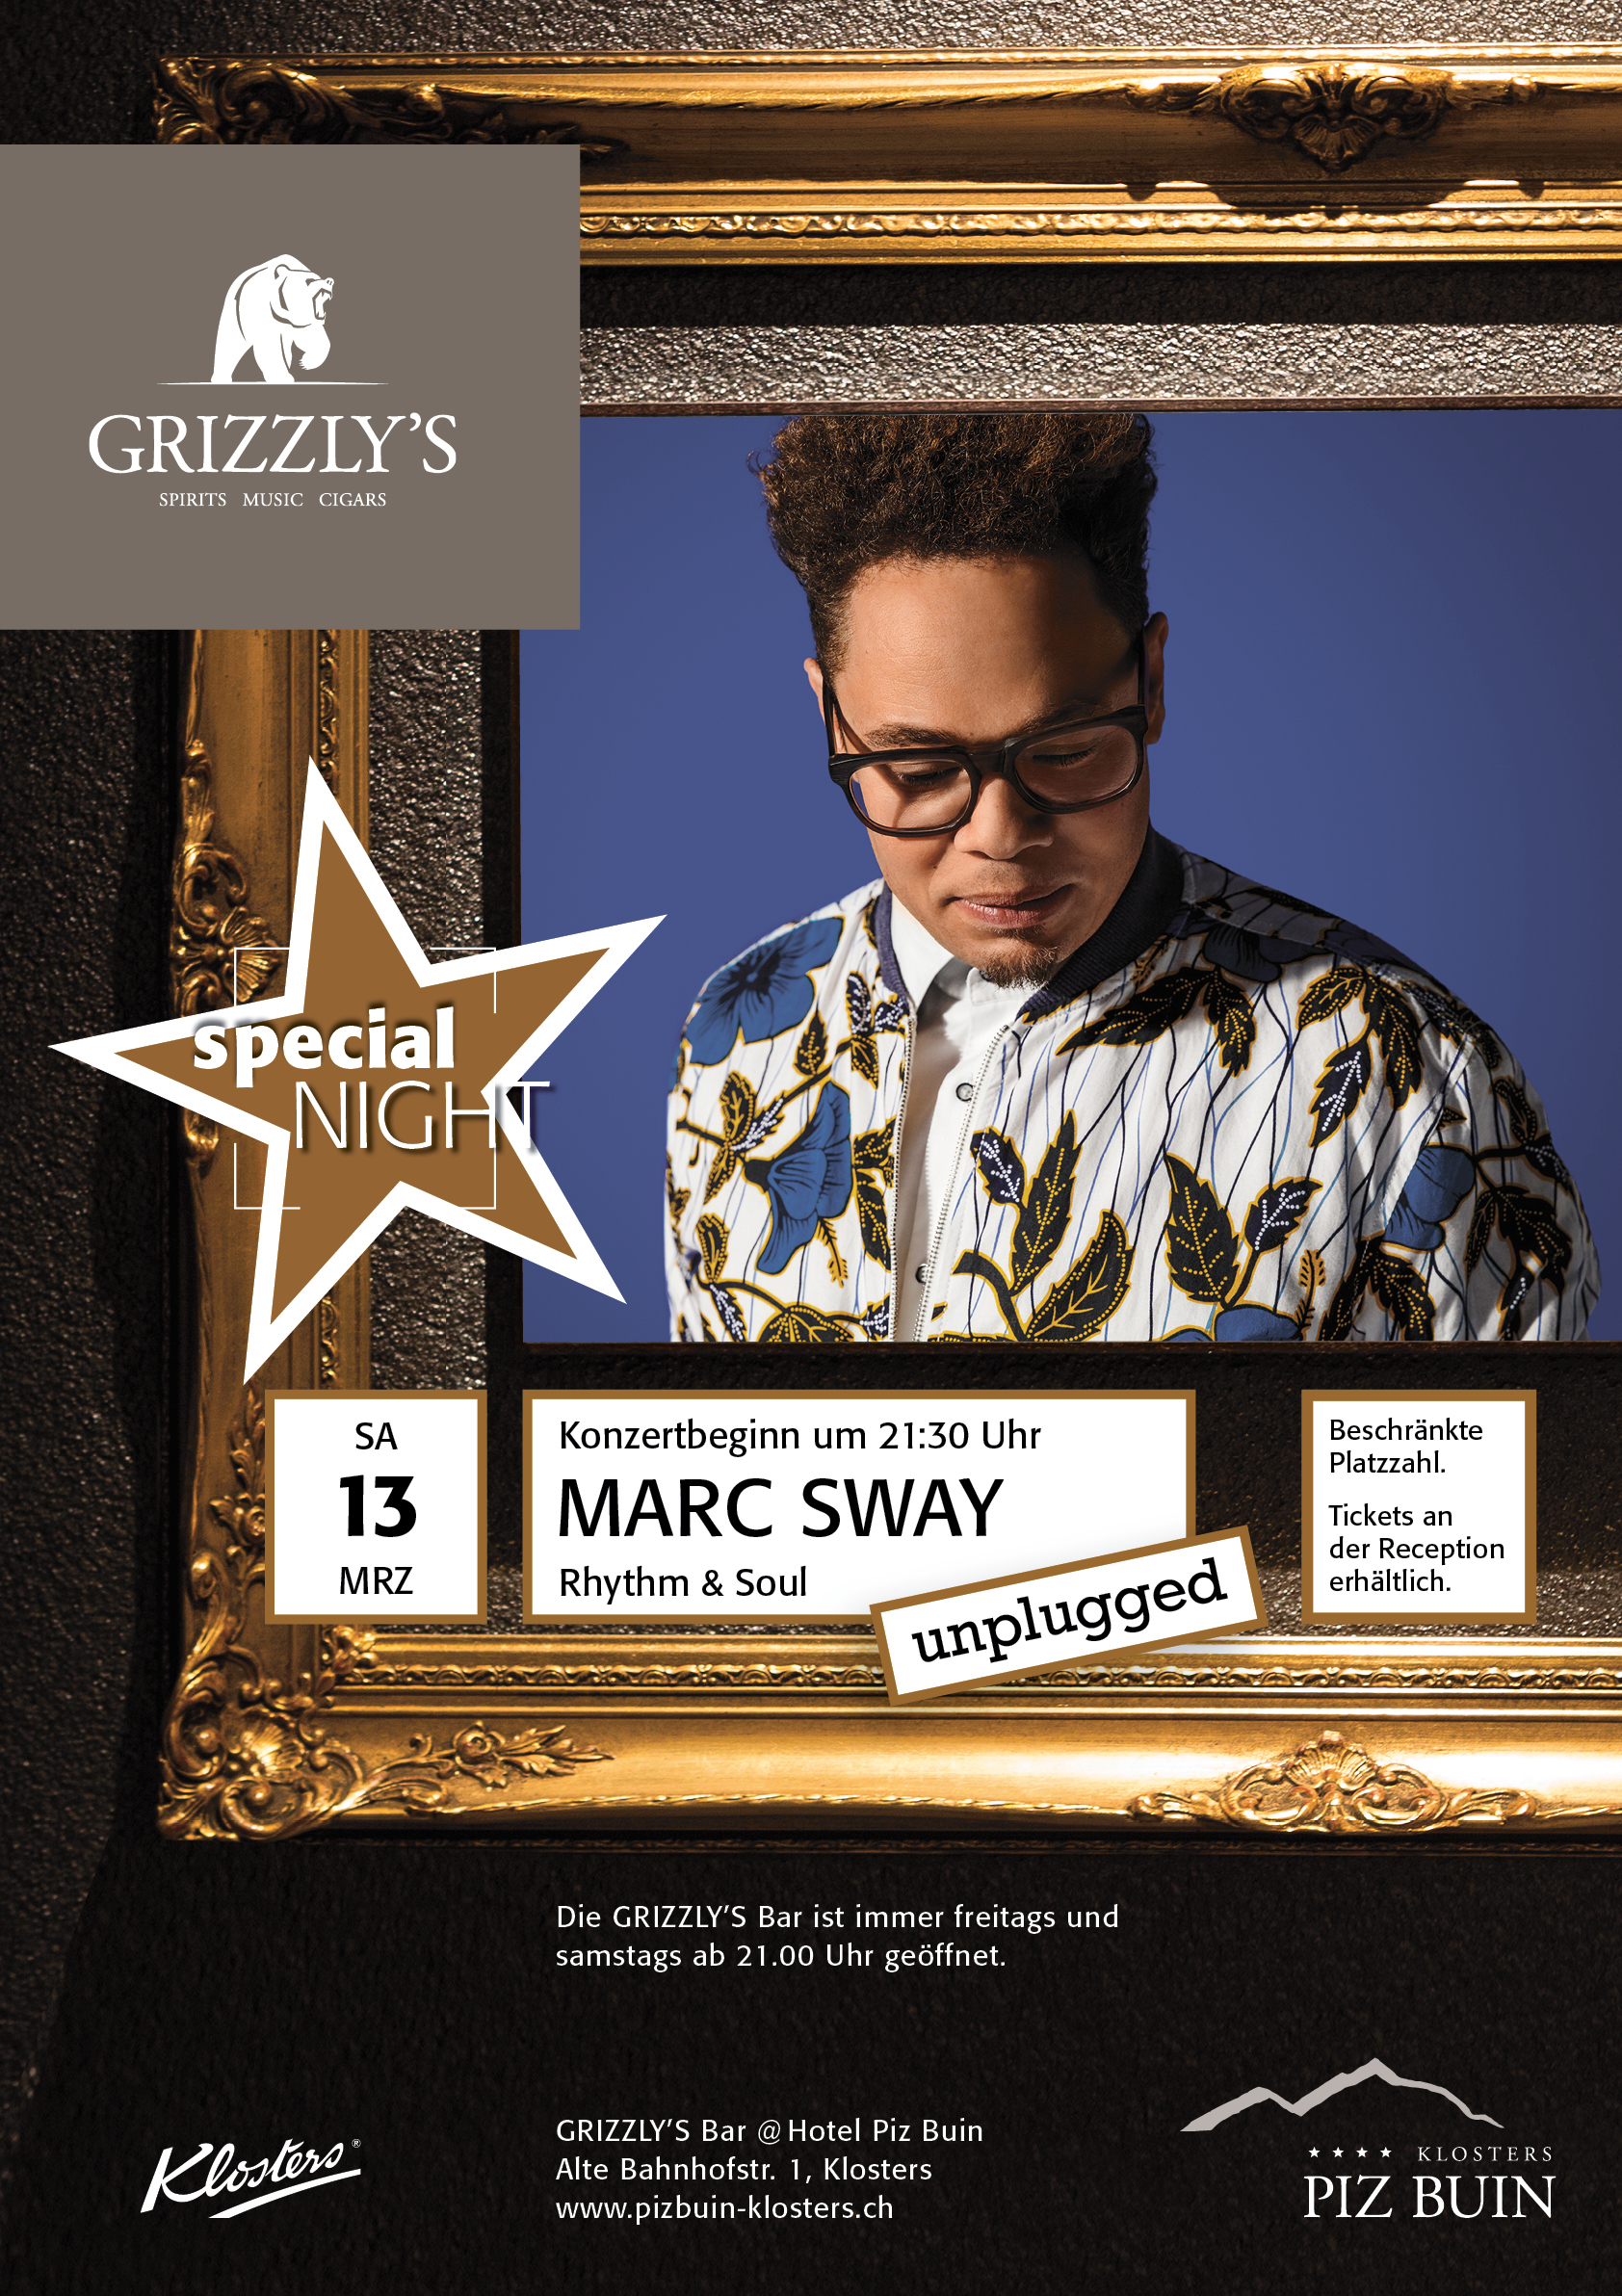 Plakat Marc Sway Grizzly's Bar Hotel Piz Buin Klosters by uniik.com